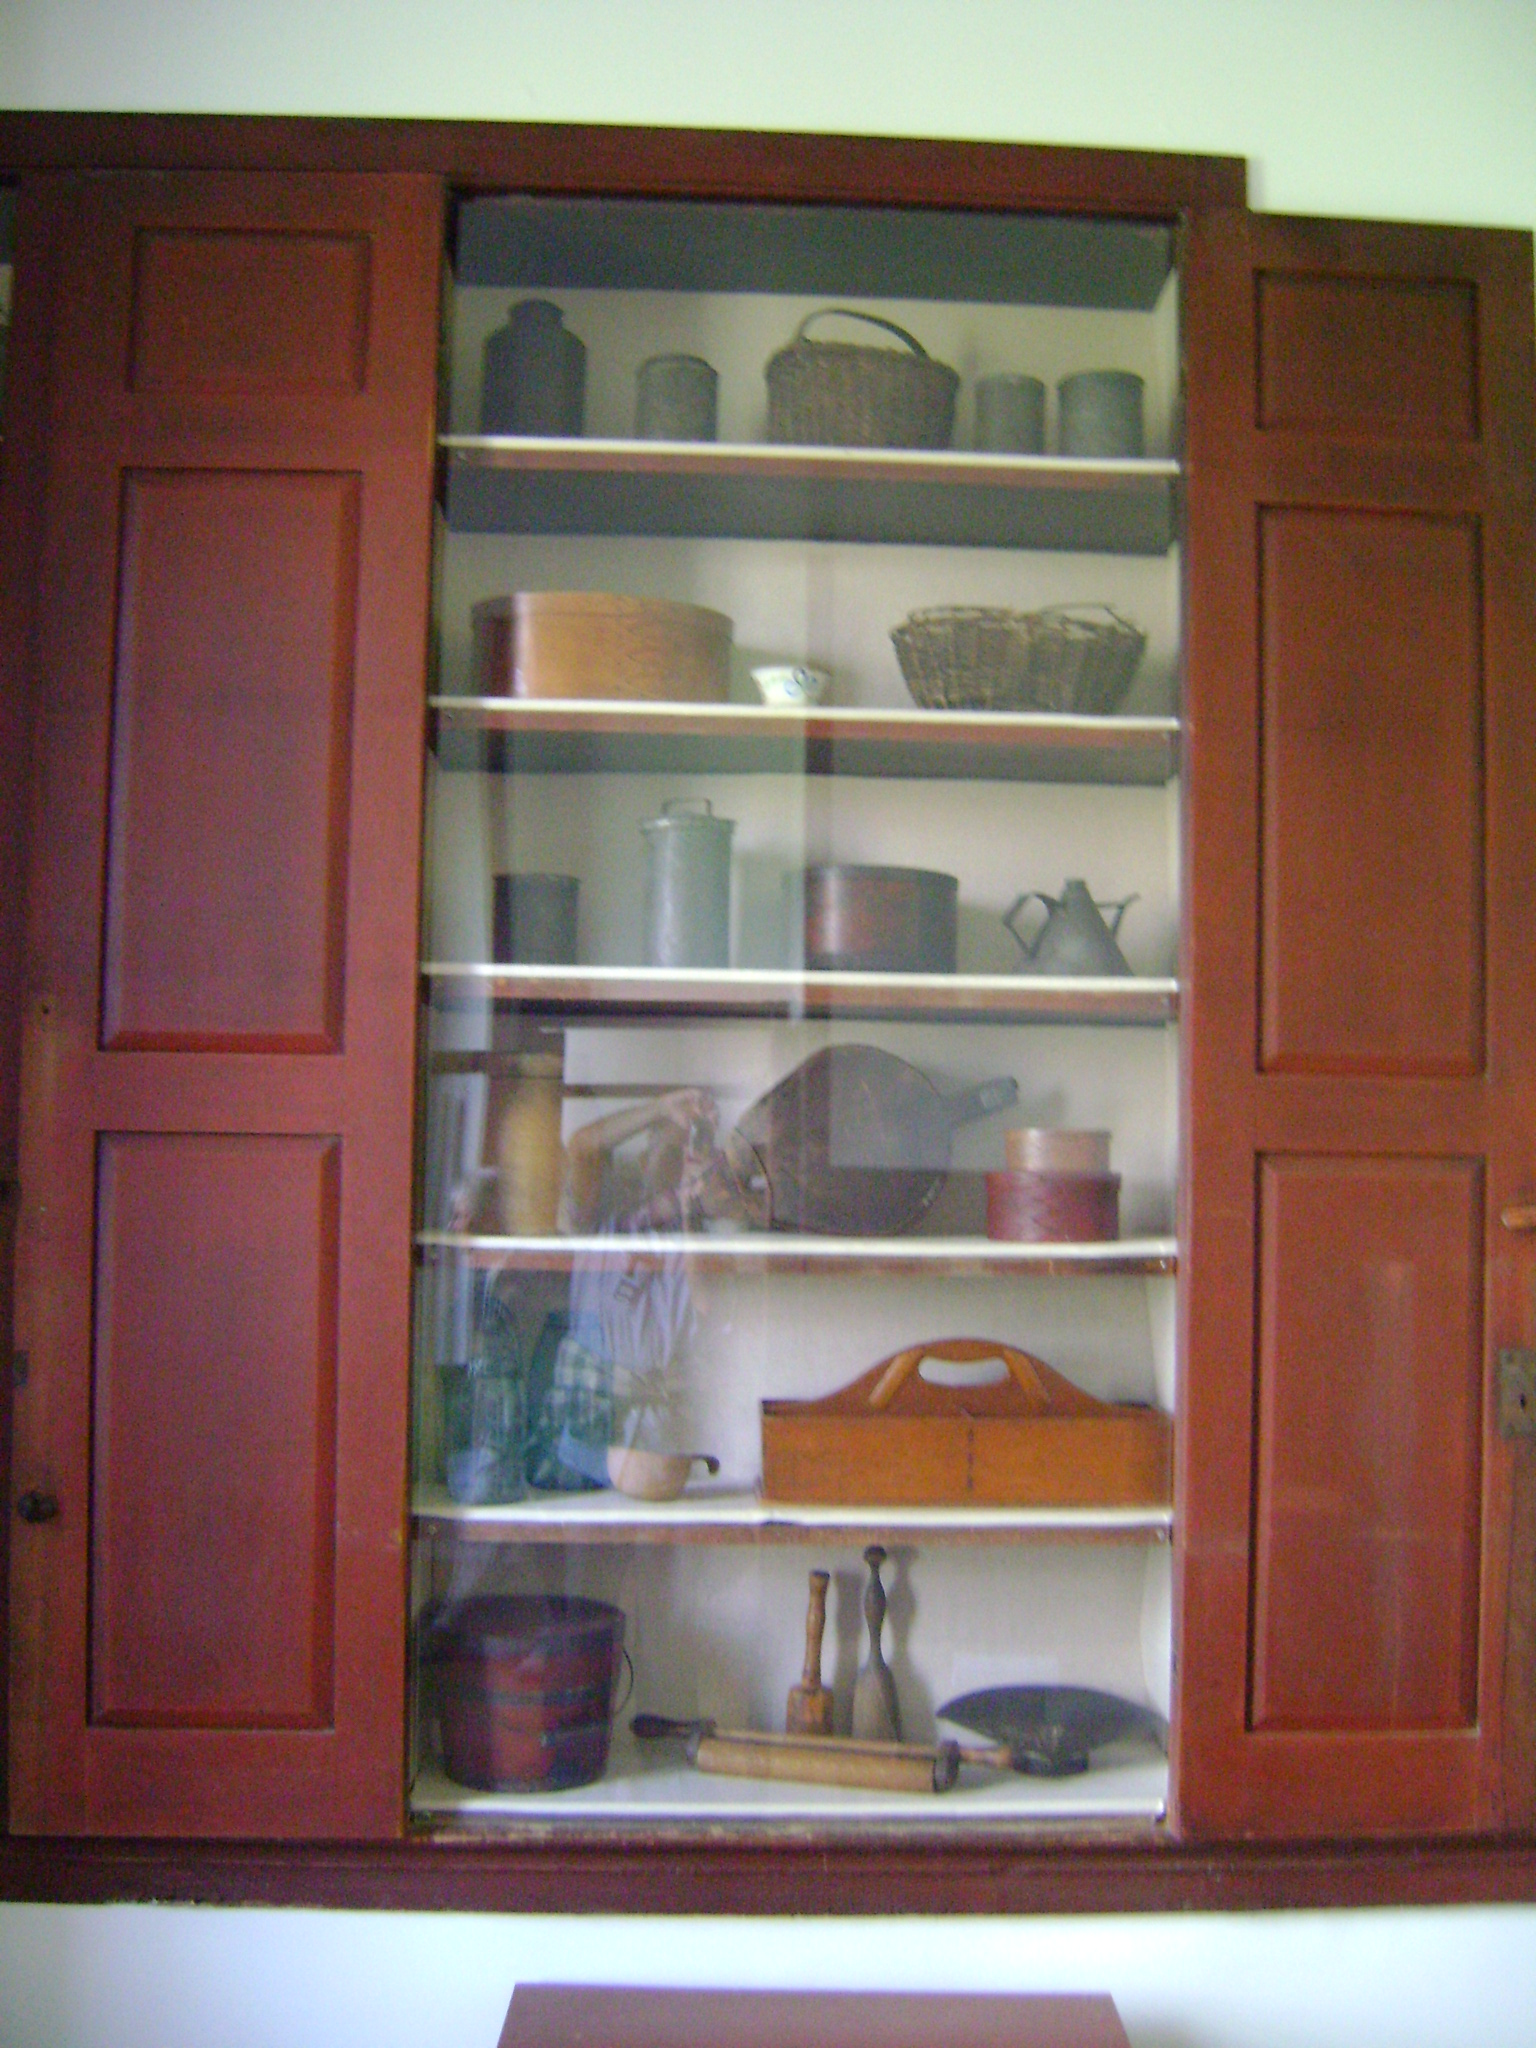 File:Shaker kitchen accessories.JPG - Wikimedia Commons